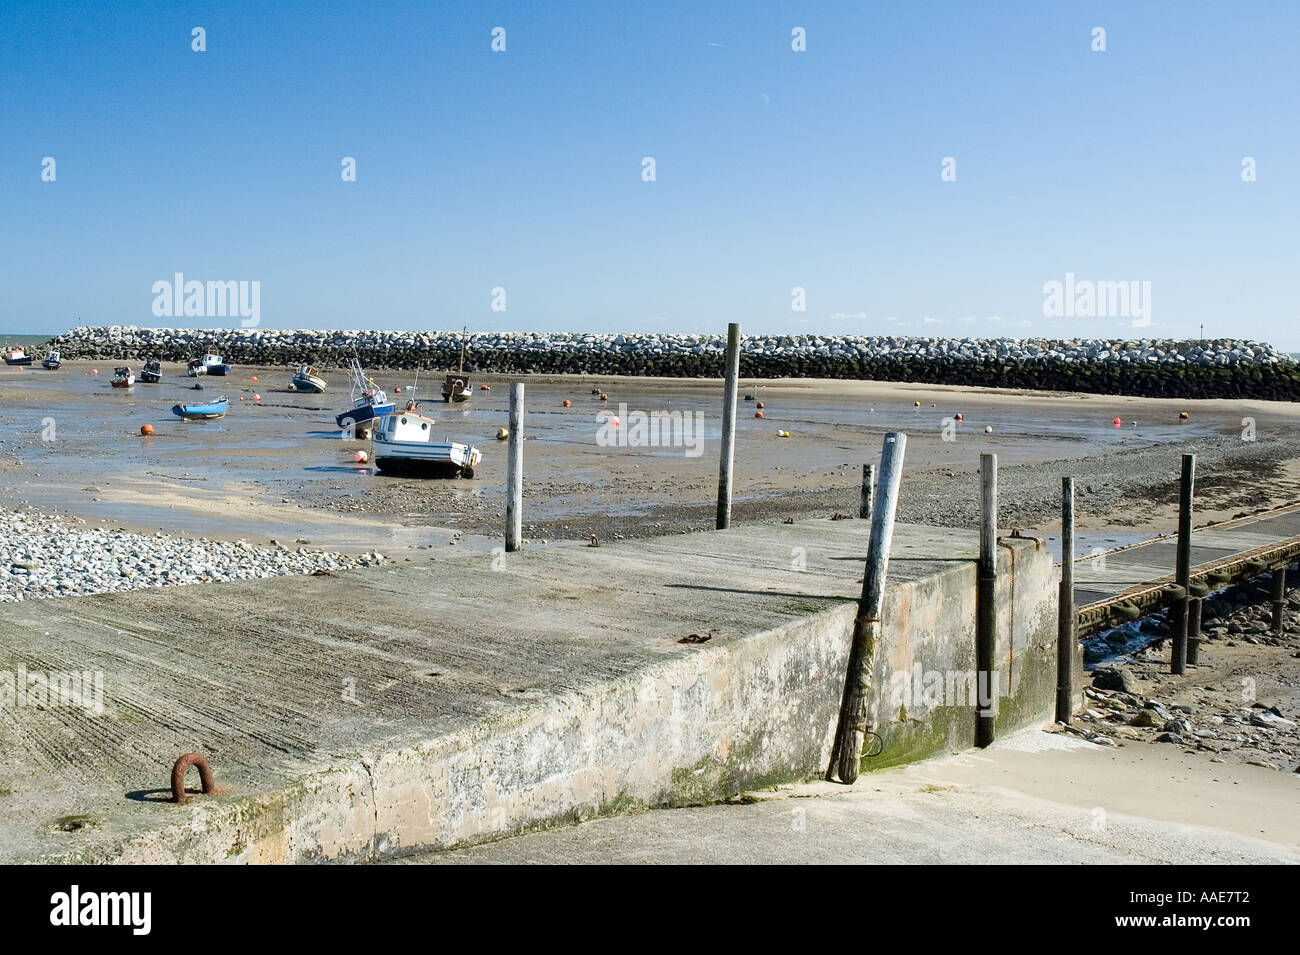 Harbour at Rhos on Sea Colwyn Bay - Stock Image